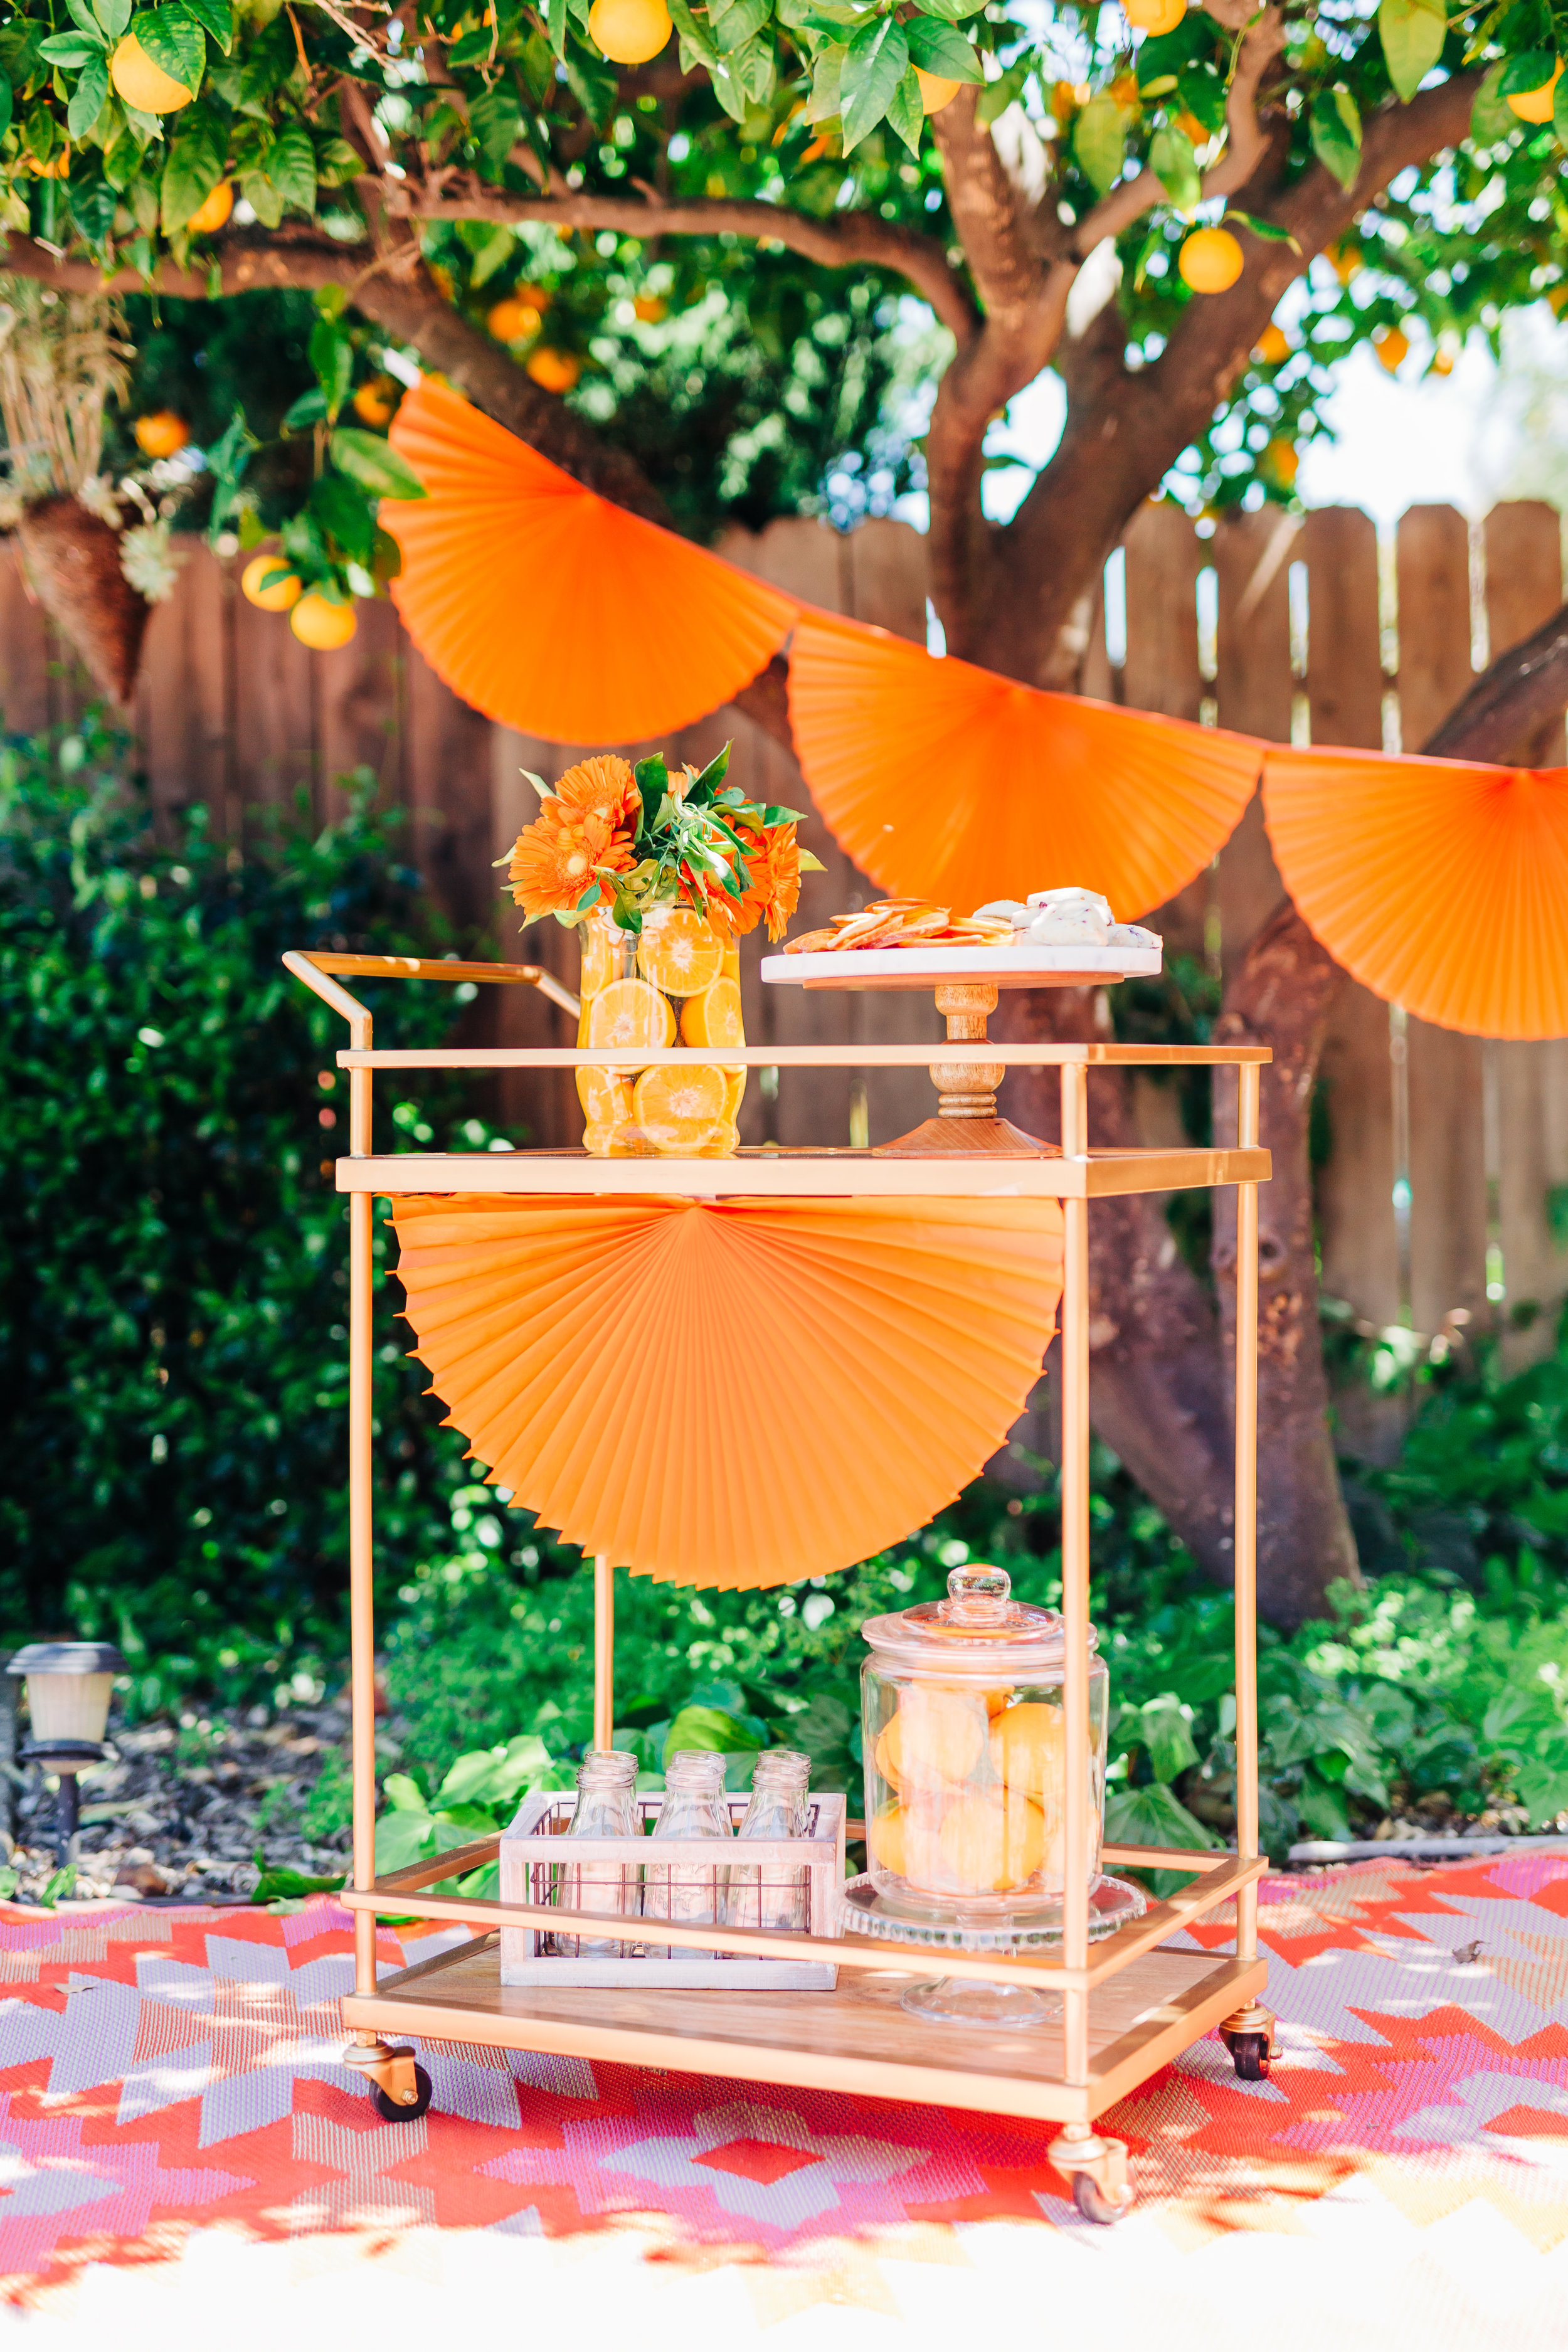 Bar cart decorations for orange picking party. Candied oranges and orange scones4.jpg